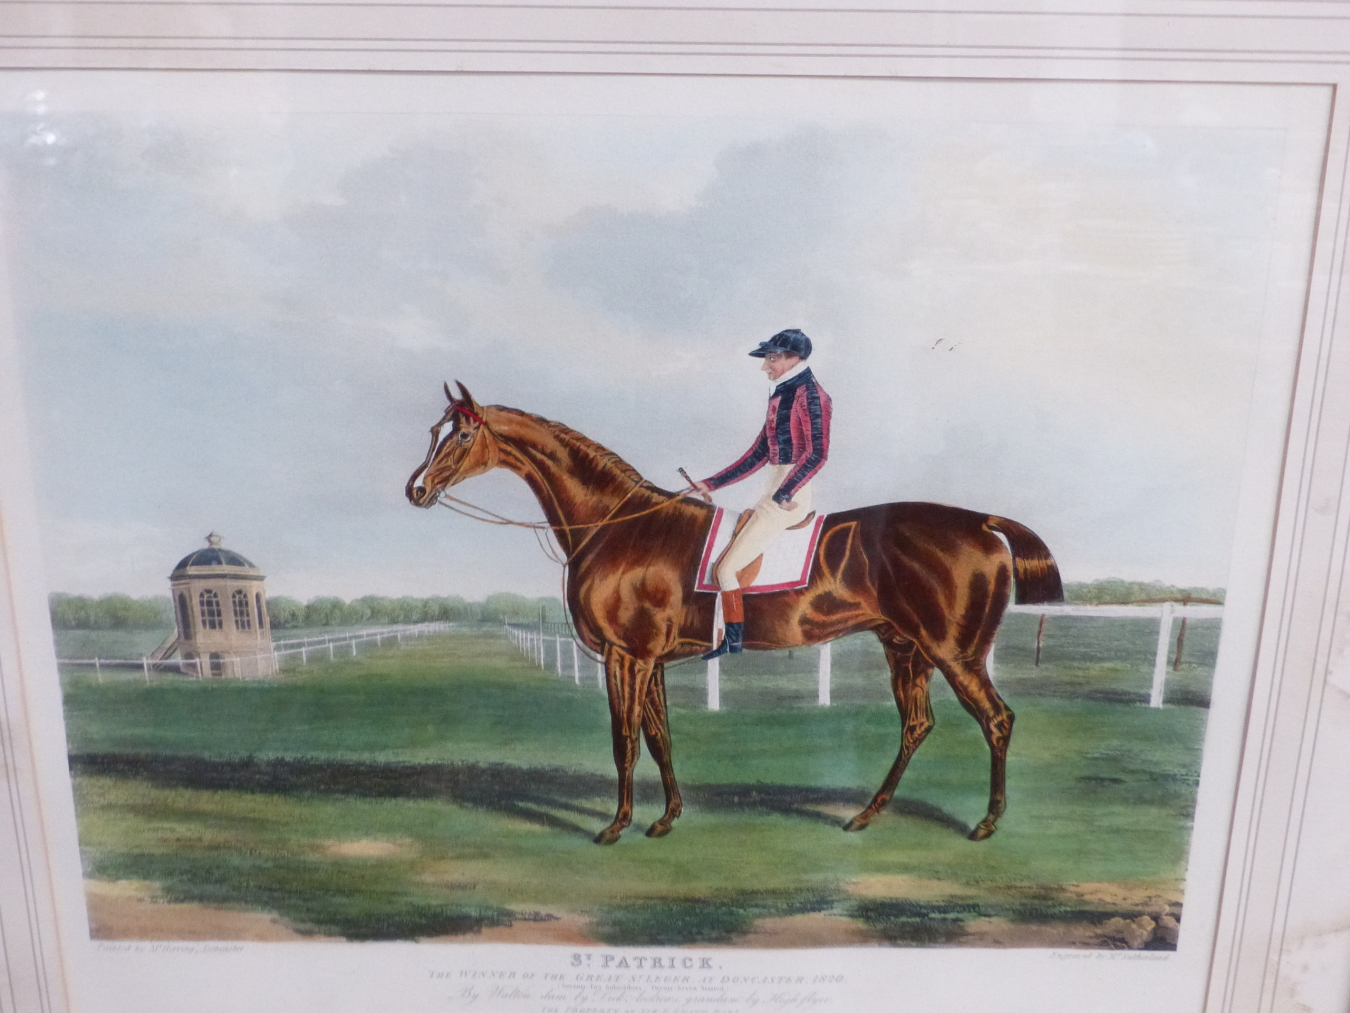 AFTER J.F. HERRING. A HAND COLOURED PRINT OF THE RACE HORSE ST. PATRICK. 37 x 44cms TOGETHER WITH